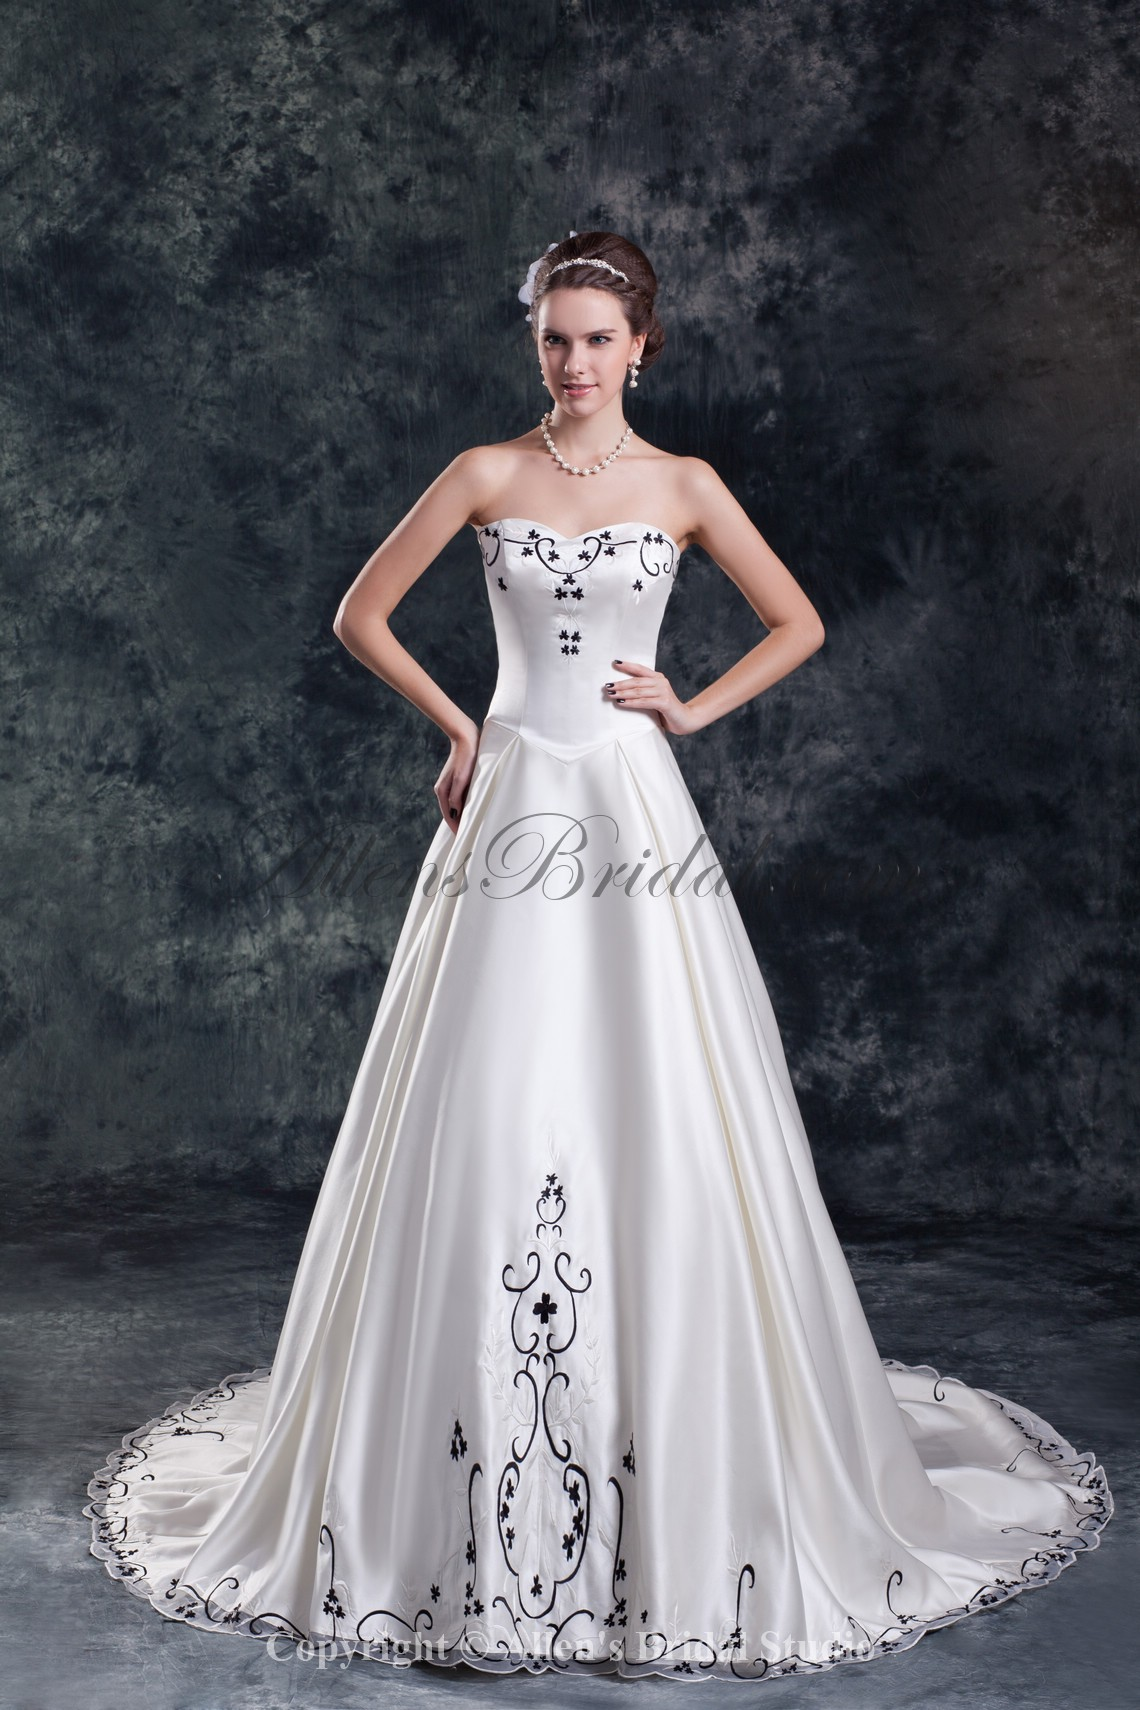 /845-6770/satin-sweetheart-neckline-sweep-train-a-line-embroidered-wedding-dress.jpg